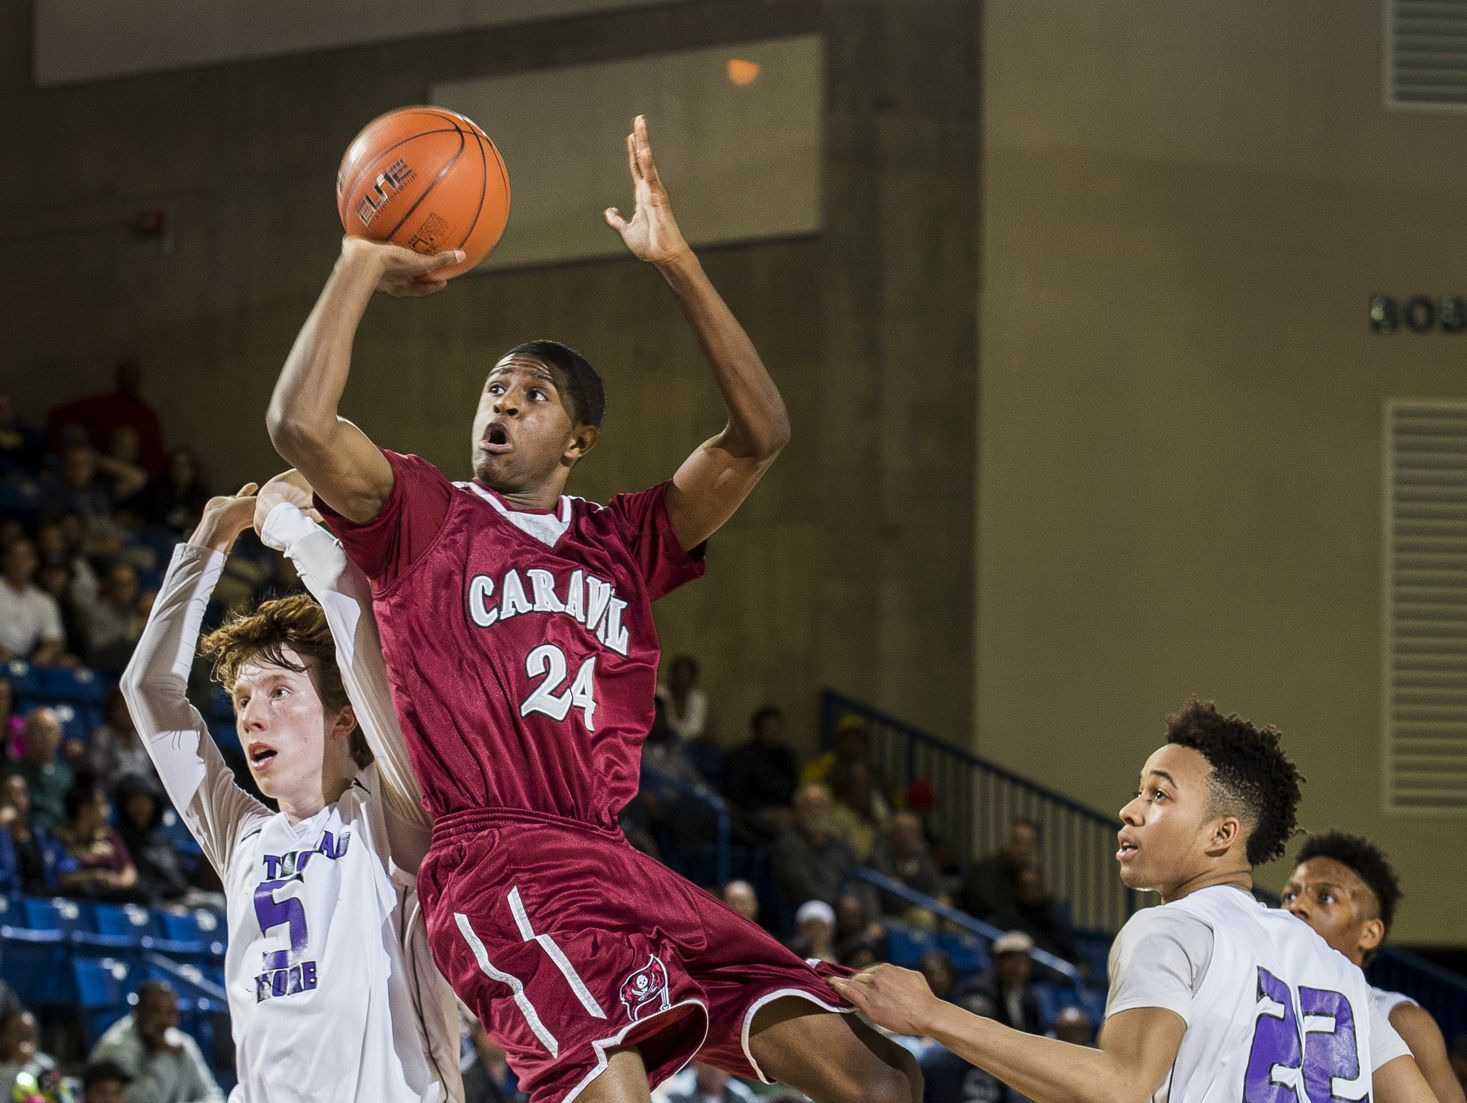 Caravel's O'Koye Parker puts up a shot in the first half of Caravel Academy's 48-47 win over St. Thomas More Academy in the DIAA Boy's State Basketball Tournament semi-finals at the Bob Carpenter Center in Newark on Thursday evening.